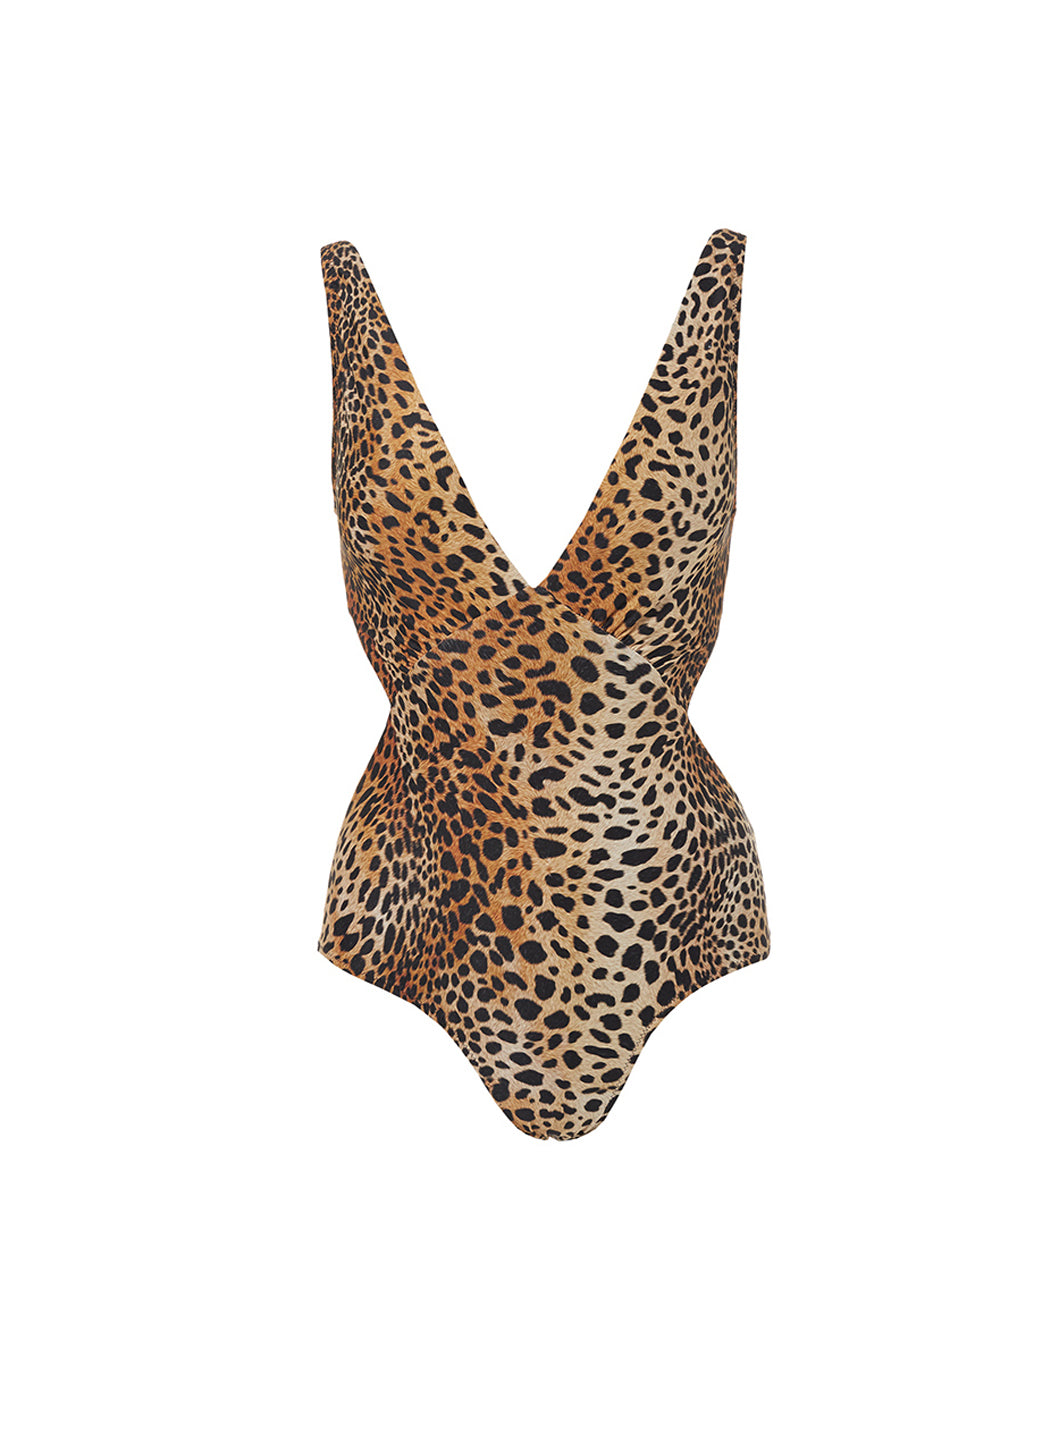 Delmar Cheetah Over The Shoulder V Neck Cut Out Swimsuit - Melissa Odabash Swimwear